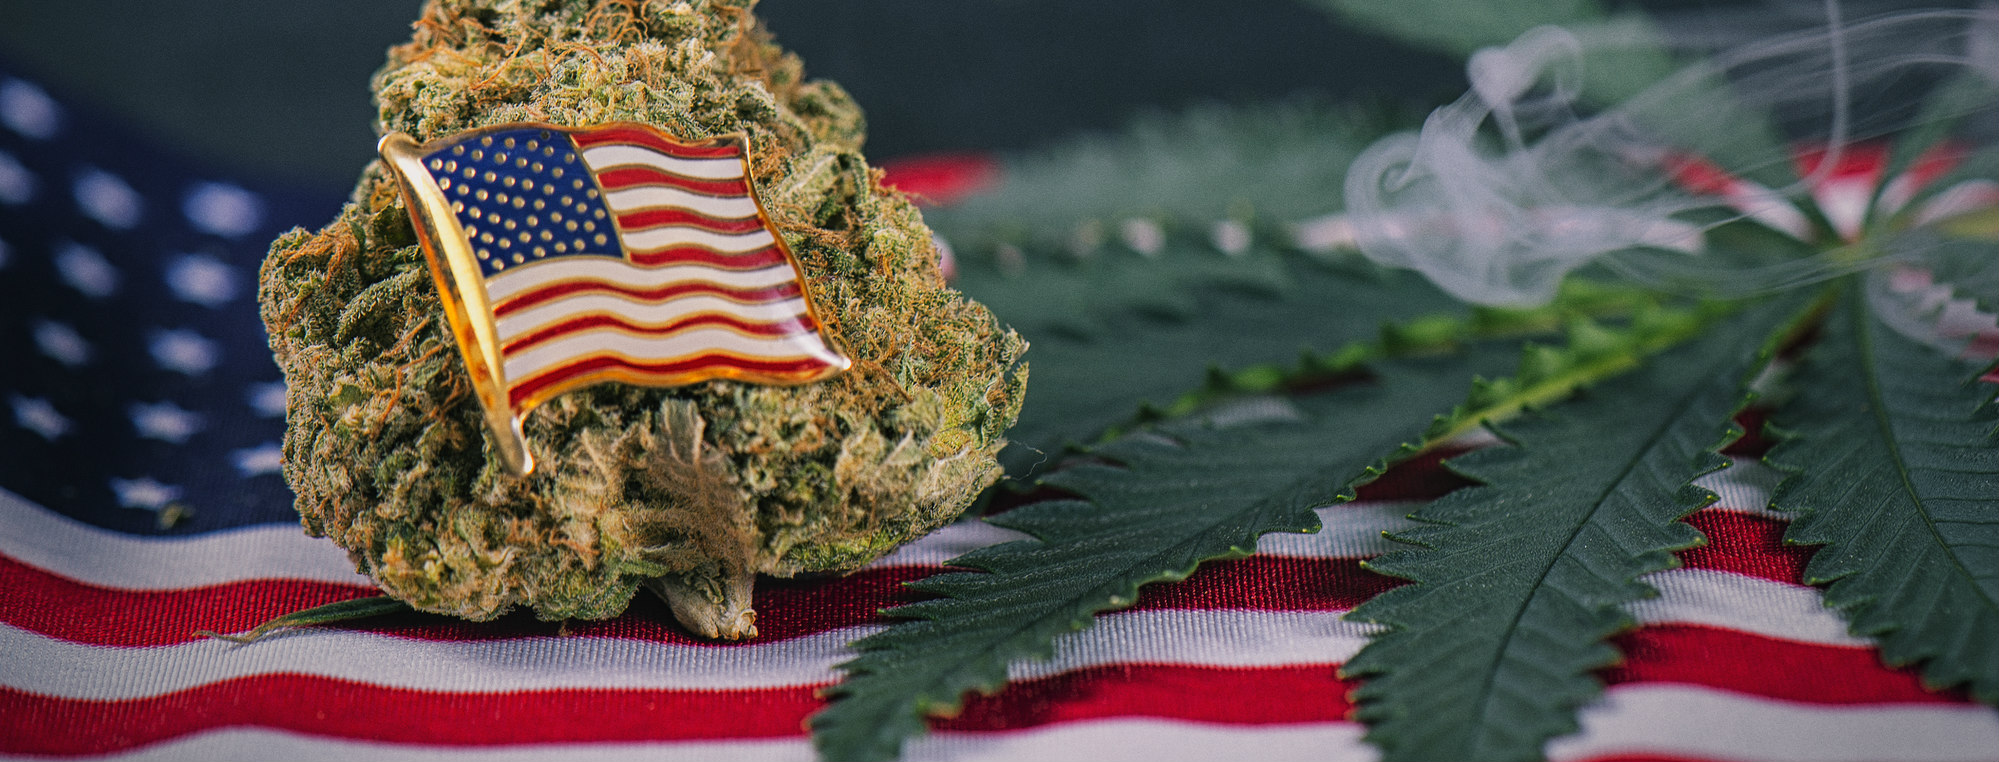 Cannabis bud, leaf and american flag with smoke - veteran theme medical marijuana concept